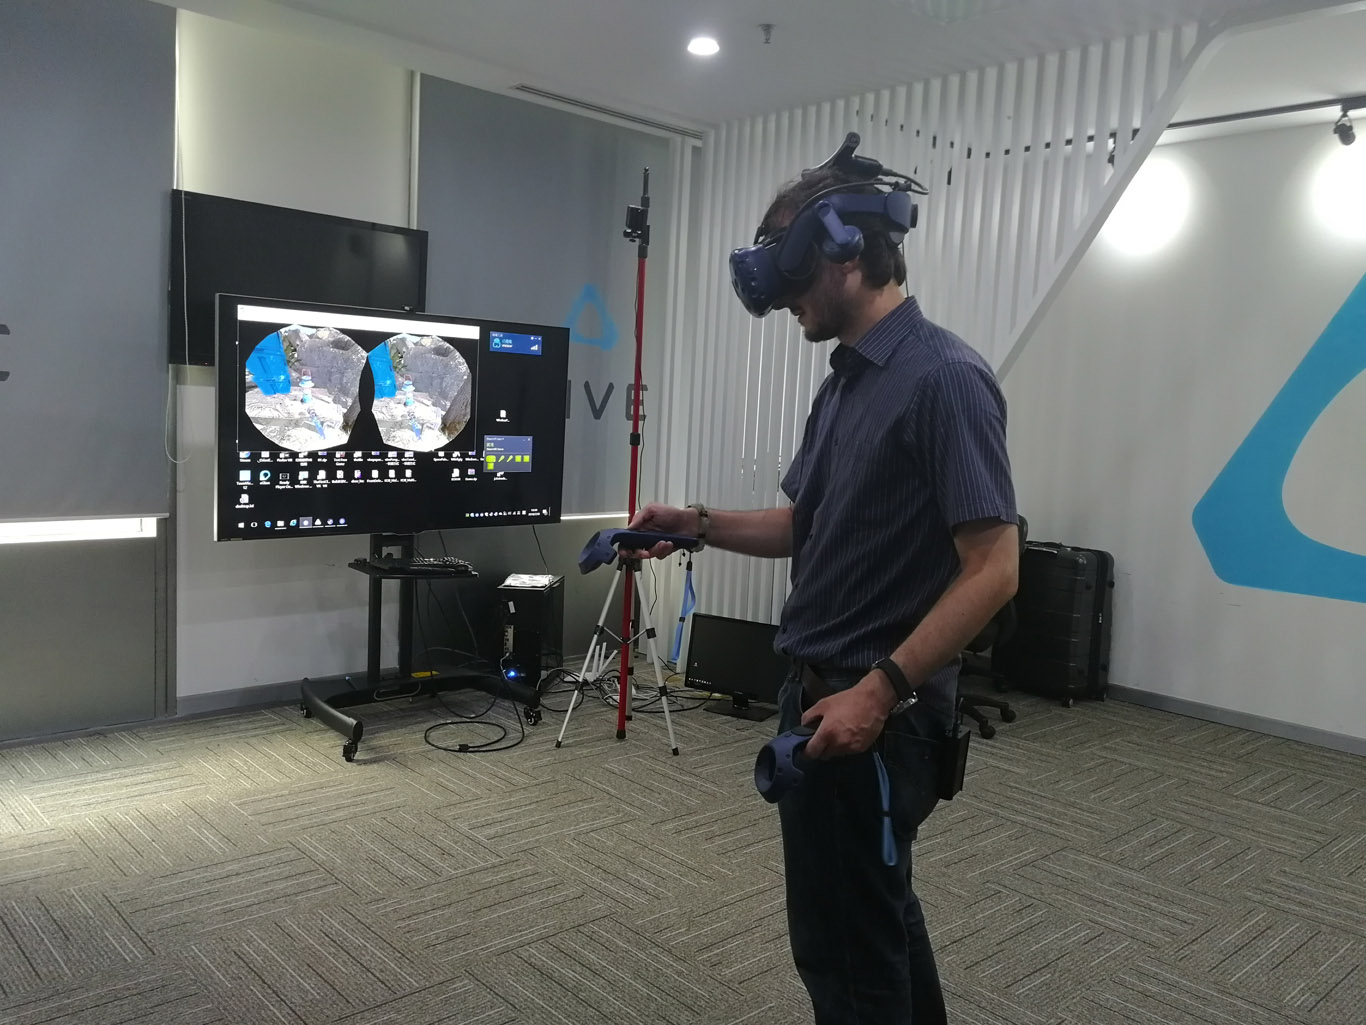 An amazing day at HTC Vive, trying SteamVR multiroom, Vive